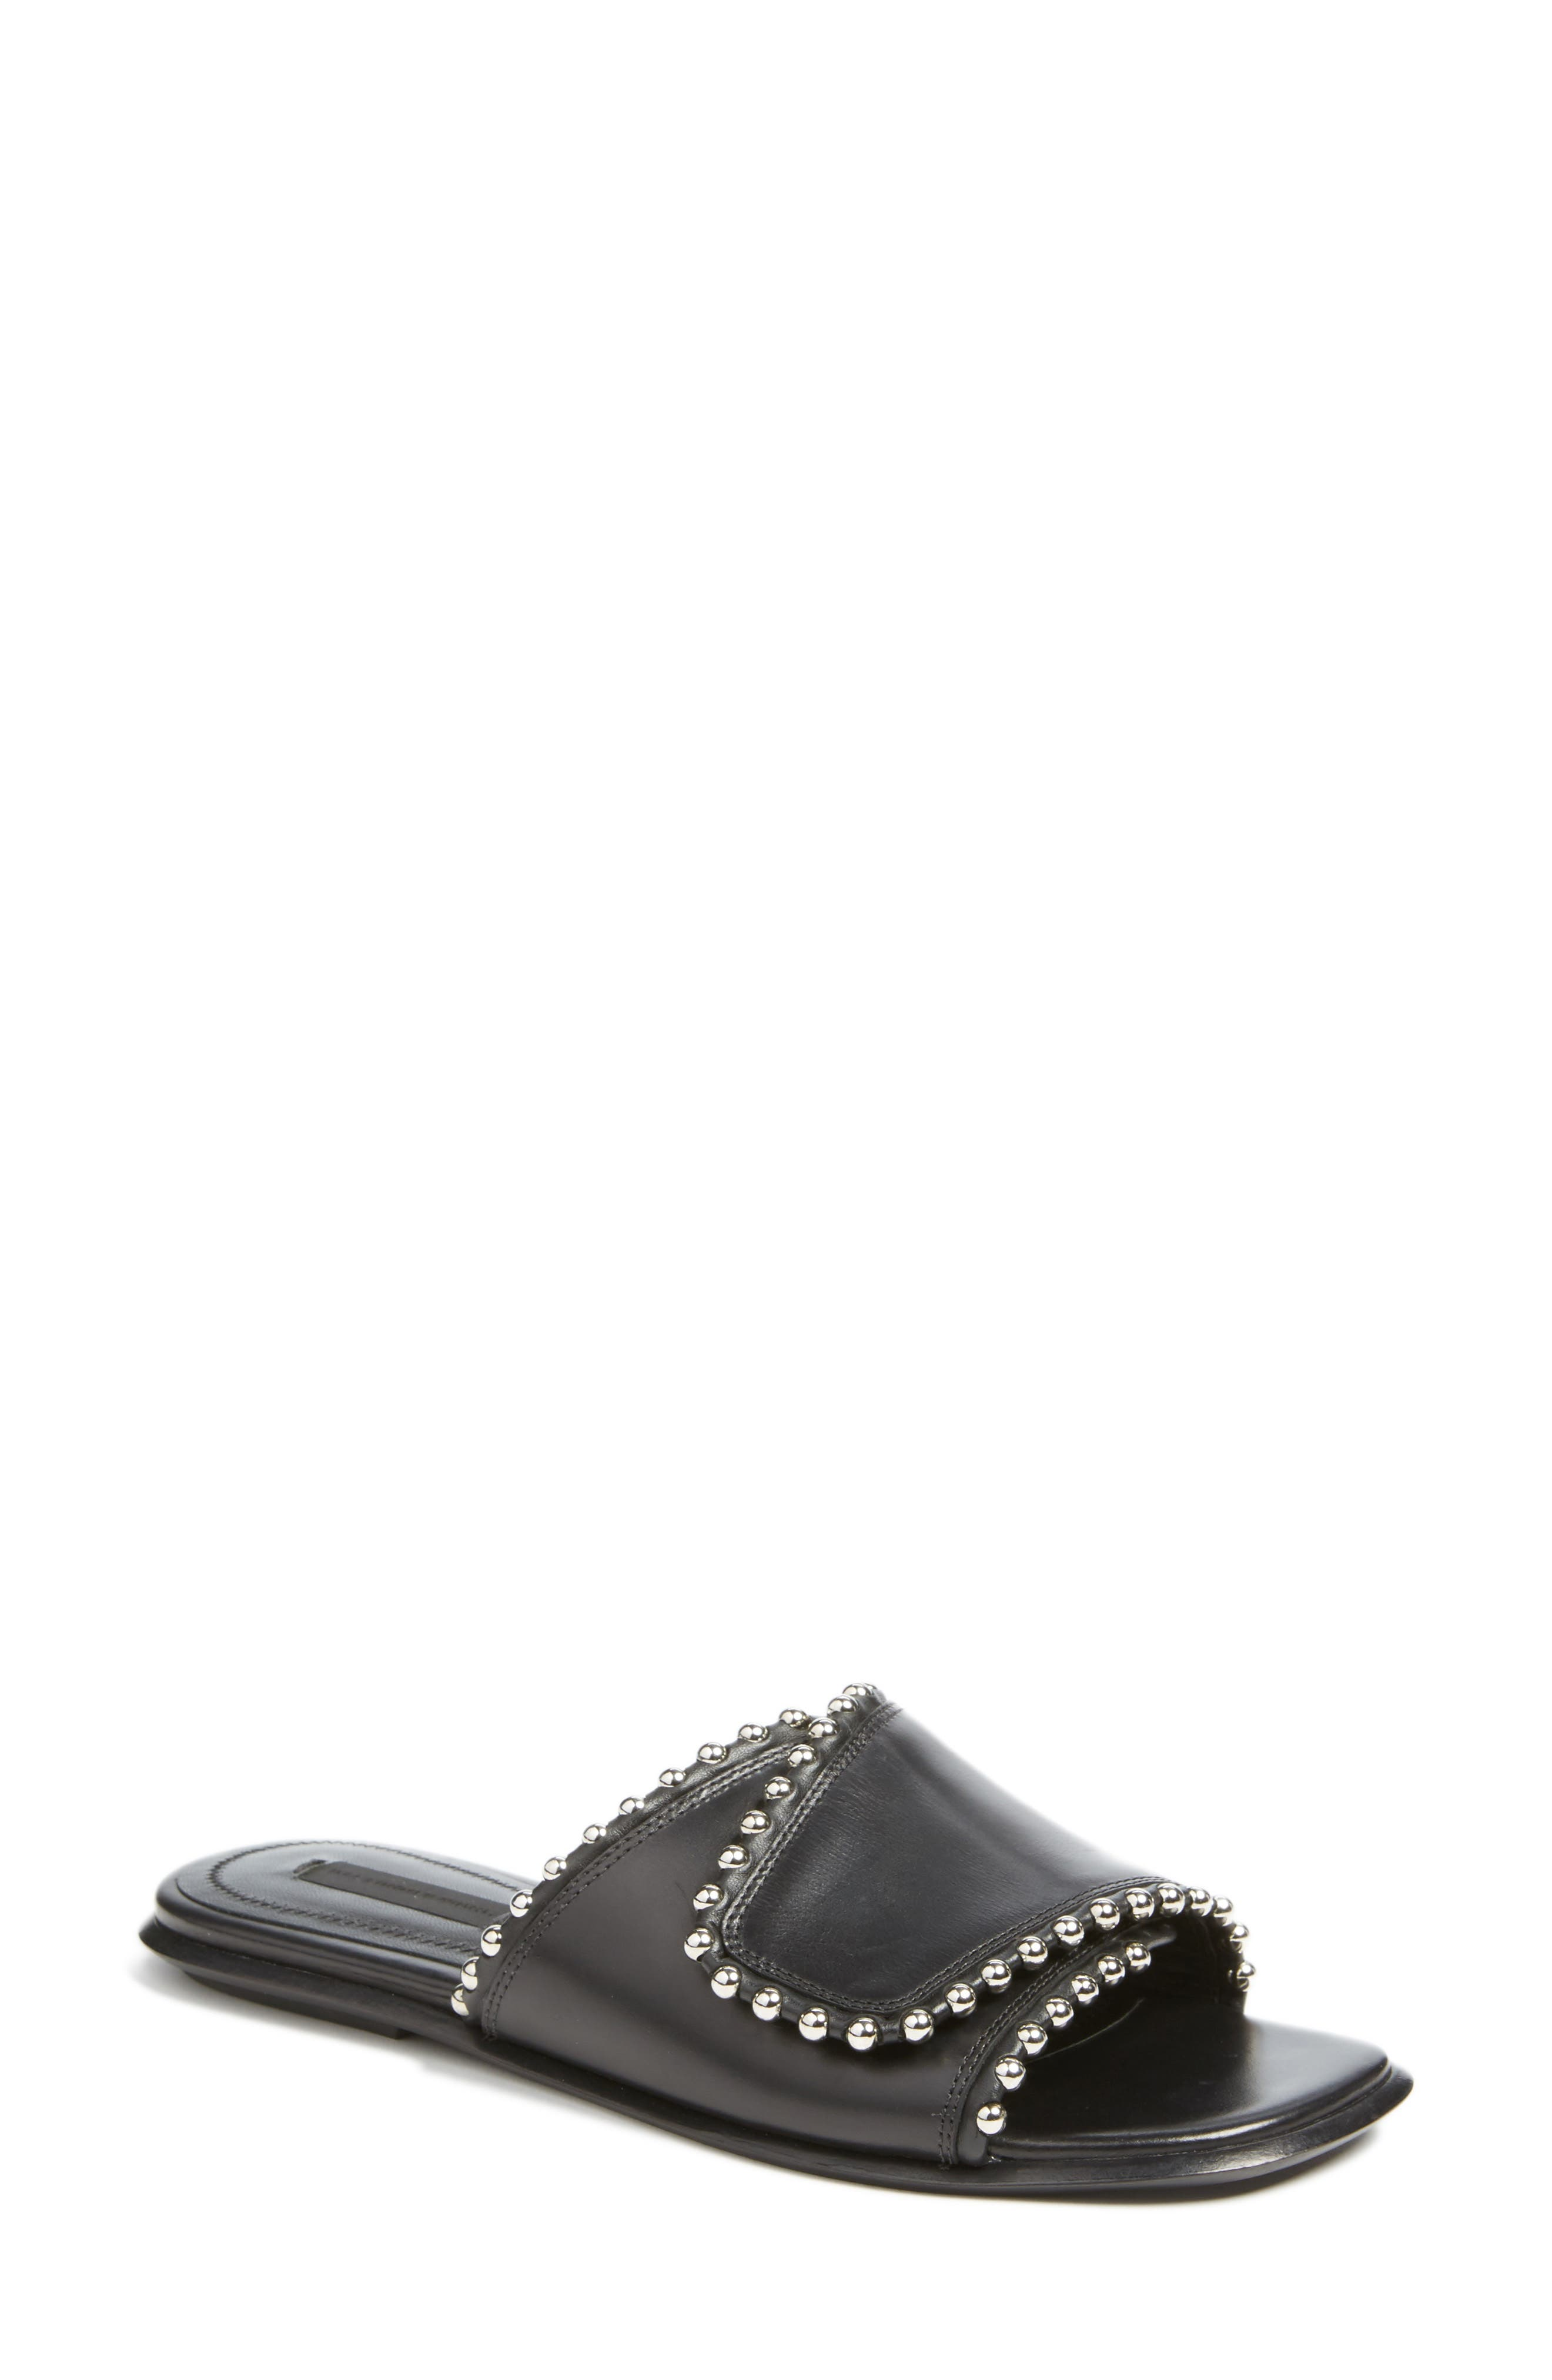 ALEXANDER WANG Leidy Slide Sandal, Main, color, 001